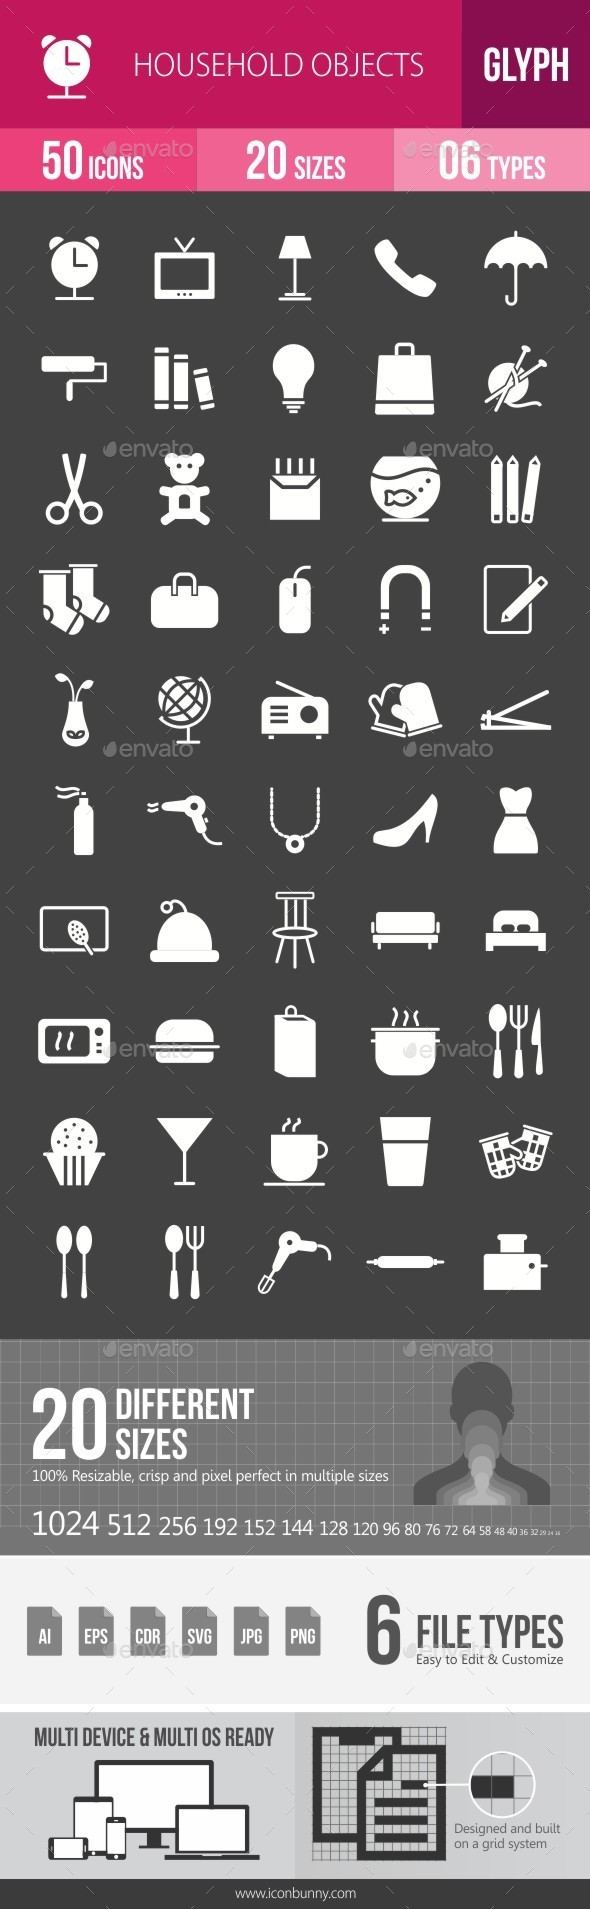 Household Objects Glyph Inverted Icons - Icons